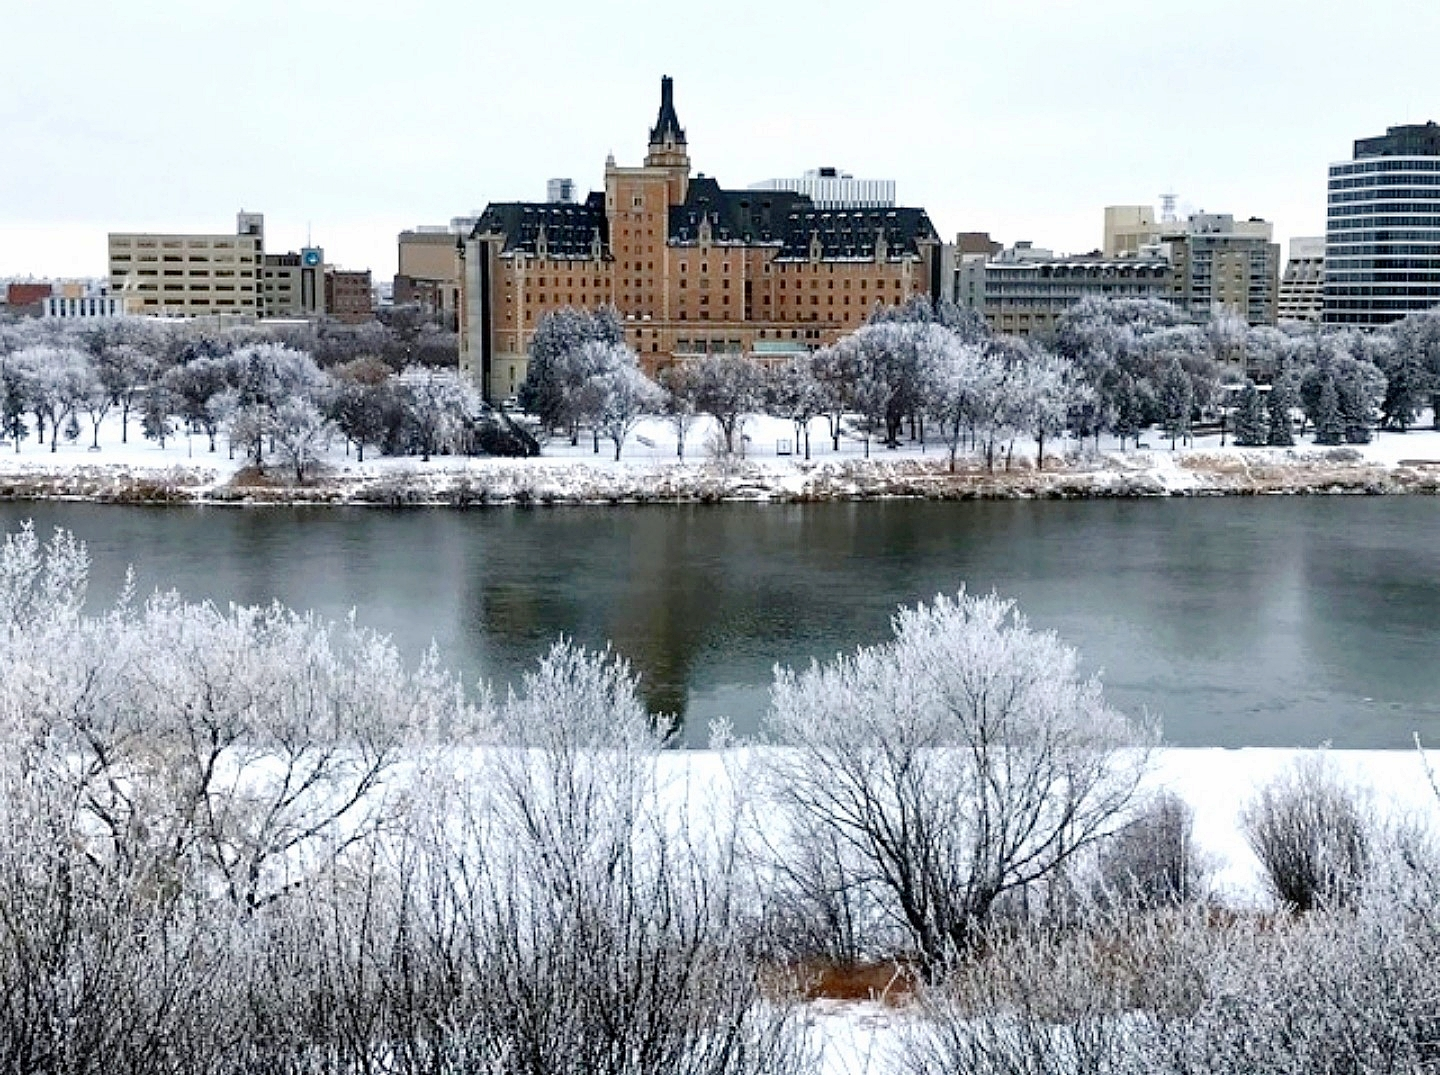 Case Study: Winter City Strategy - Client: City of SaskatoonAtlwest Communications was retained by the City of Saskatoon to provide support with relationship management activities and to gather and connect with stakeholders as part of the development of the Winter City Strategy.